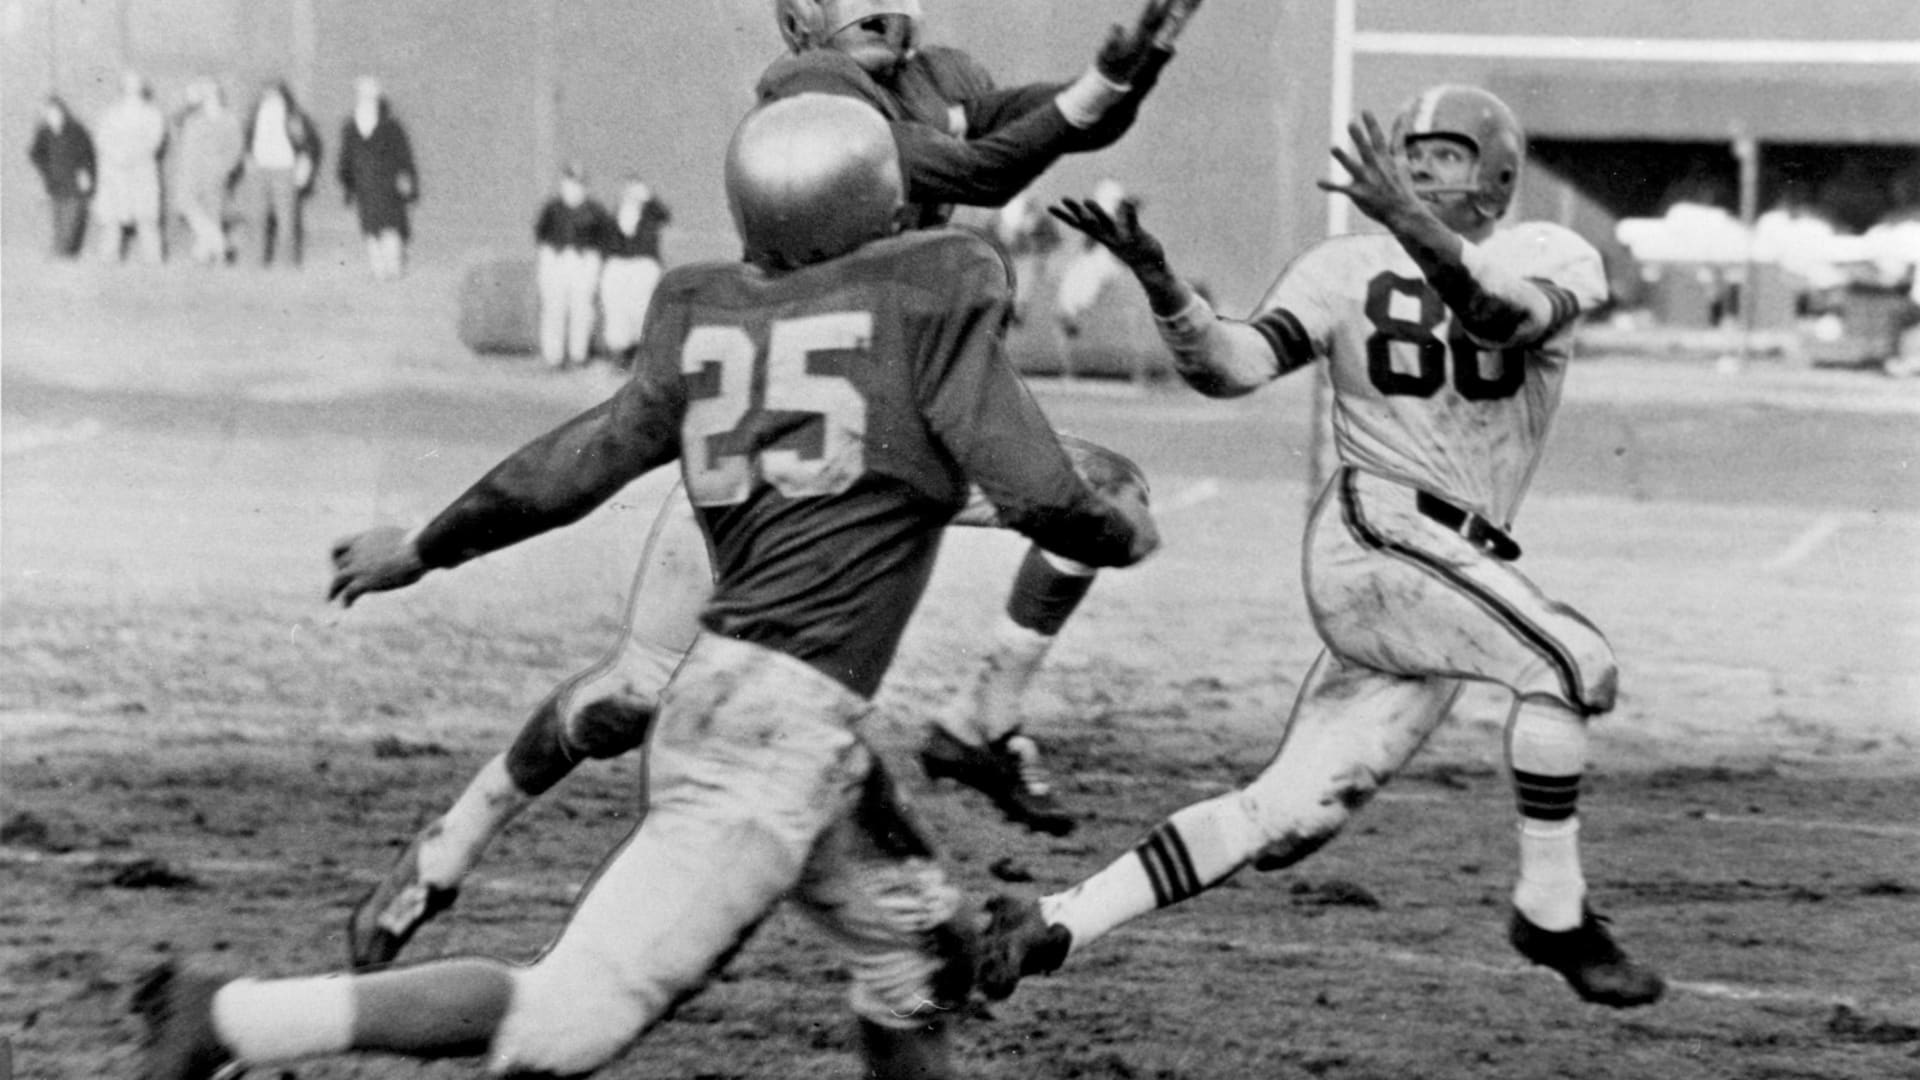 Top Five 1950s Cleveland Browns games to watch while social distancing